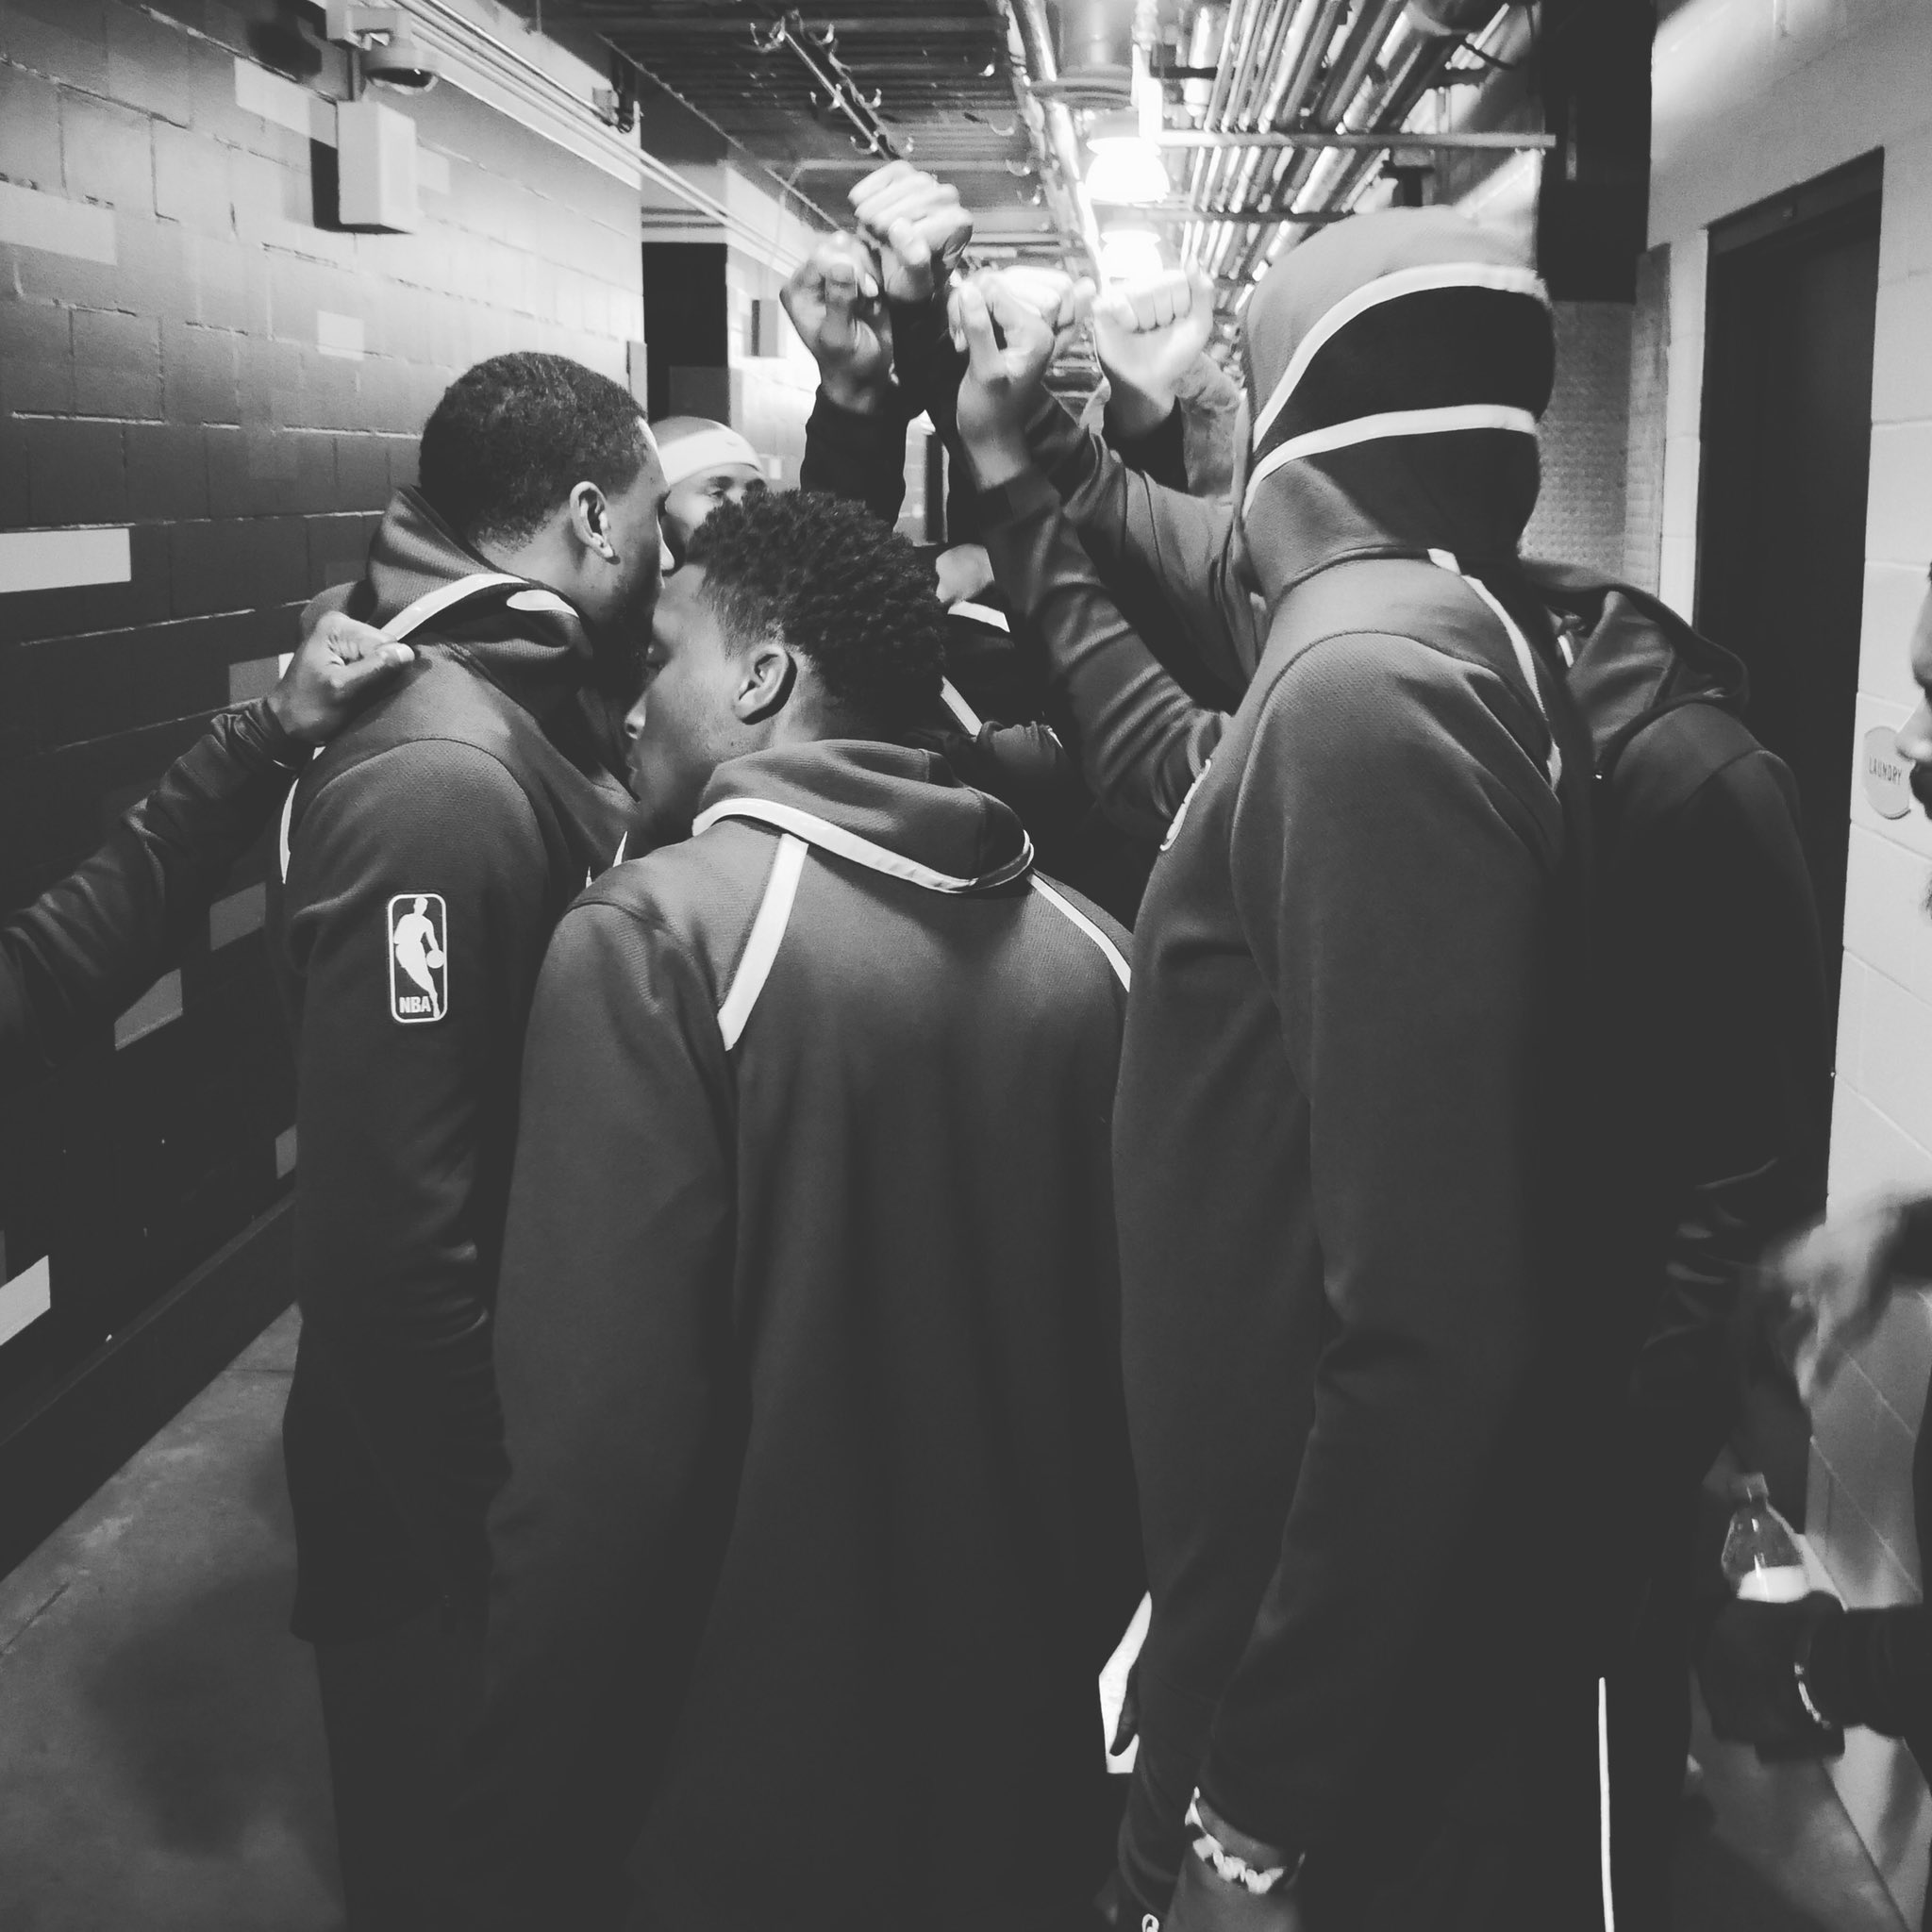 Game 7 is set for 1:00 on Sunday in Cleveland and on ABC.  #Together #PacersPlayoffs https://t.co/ugSQLNr266